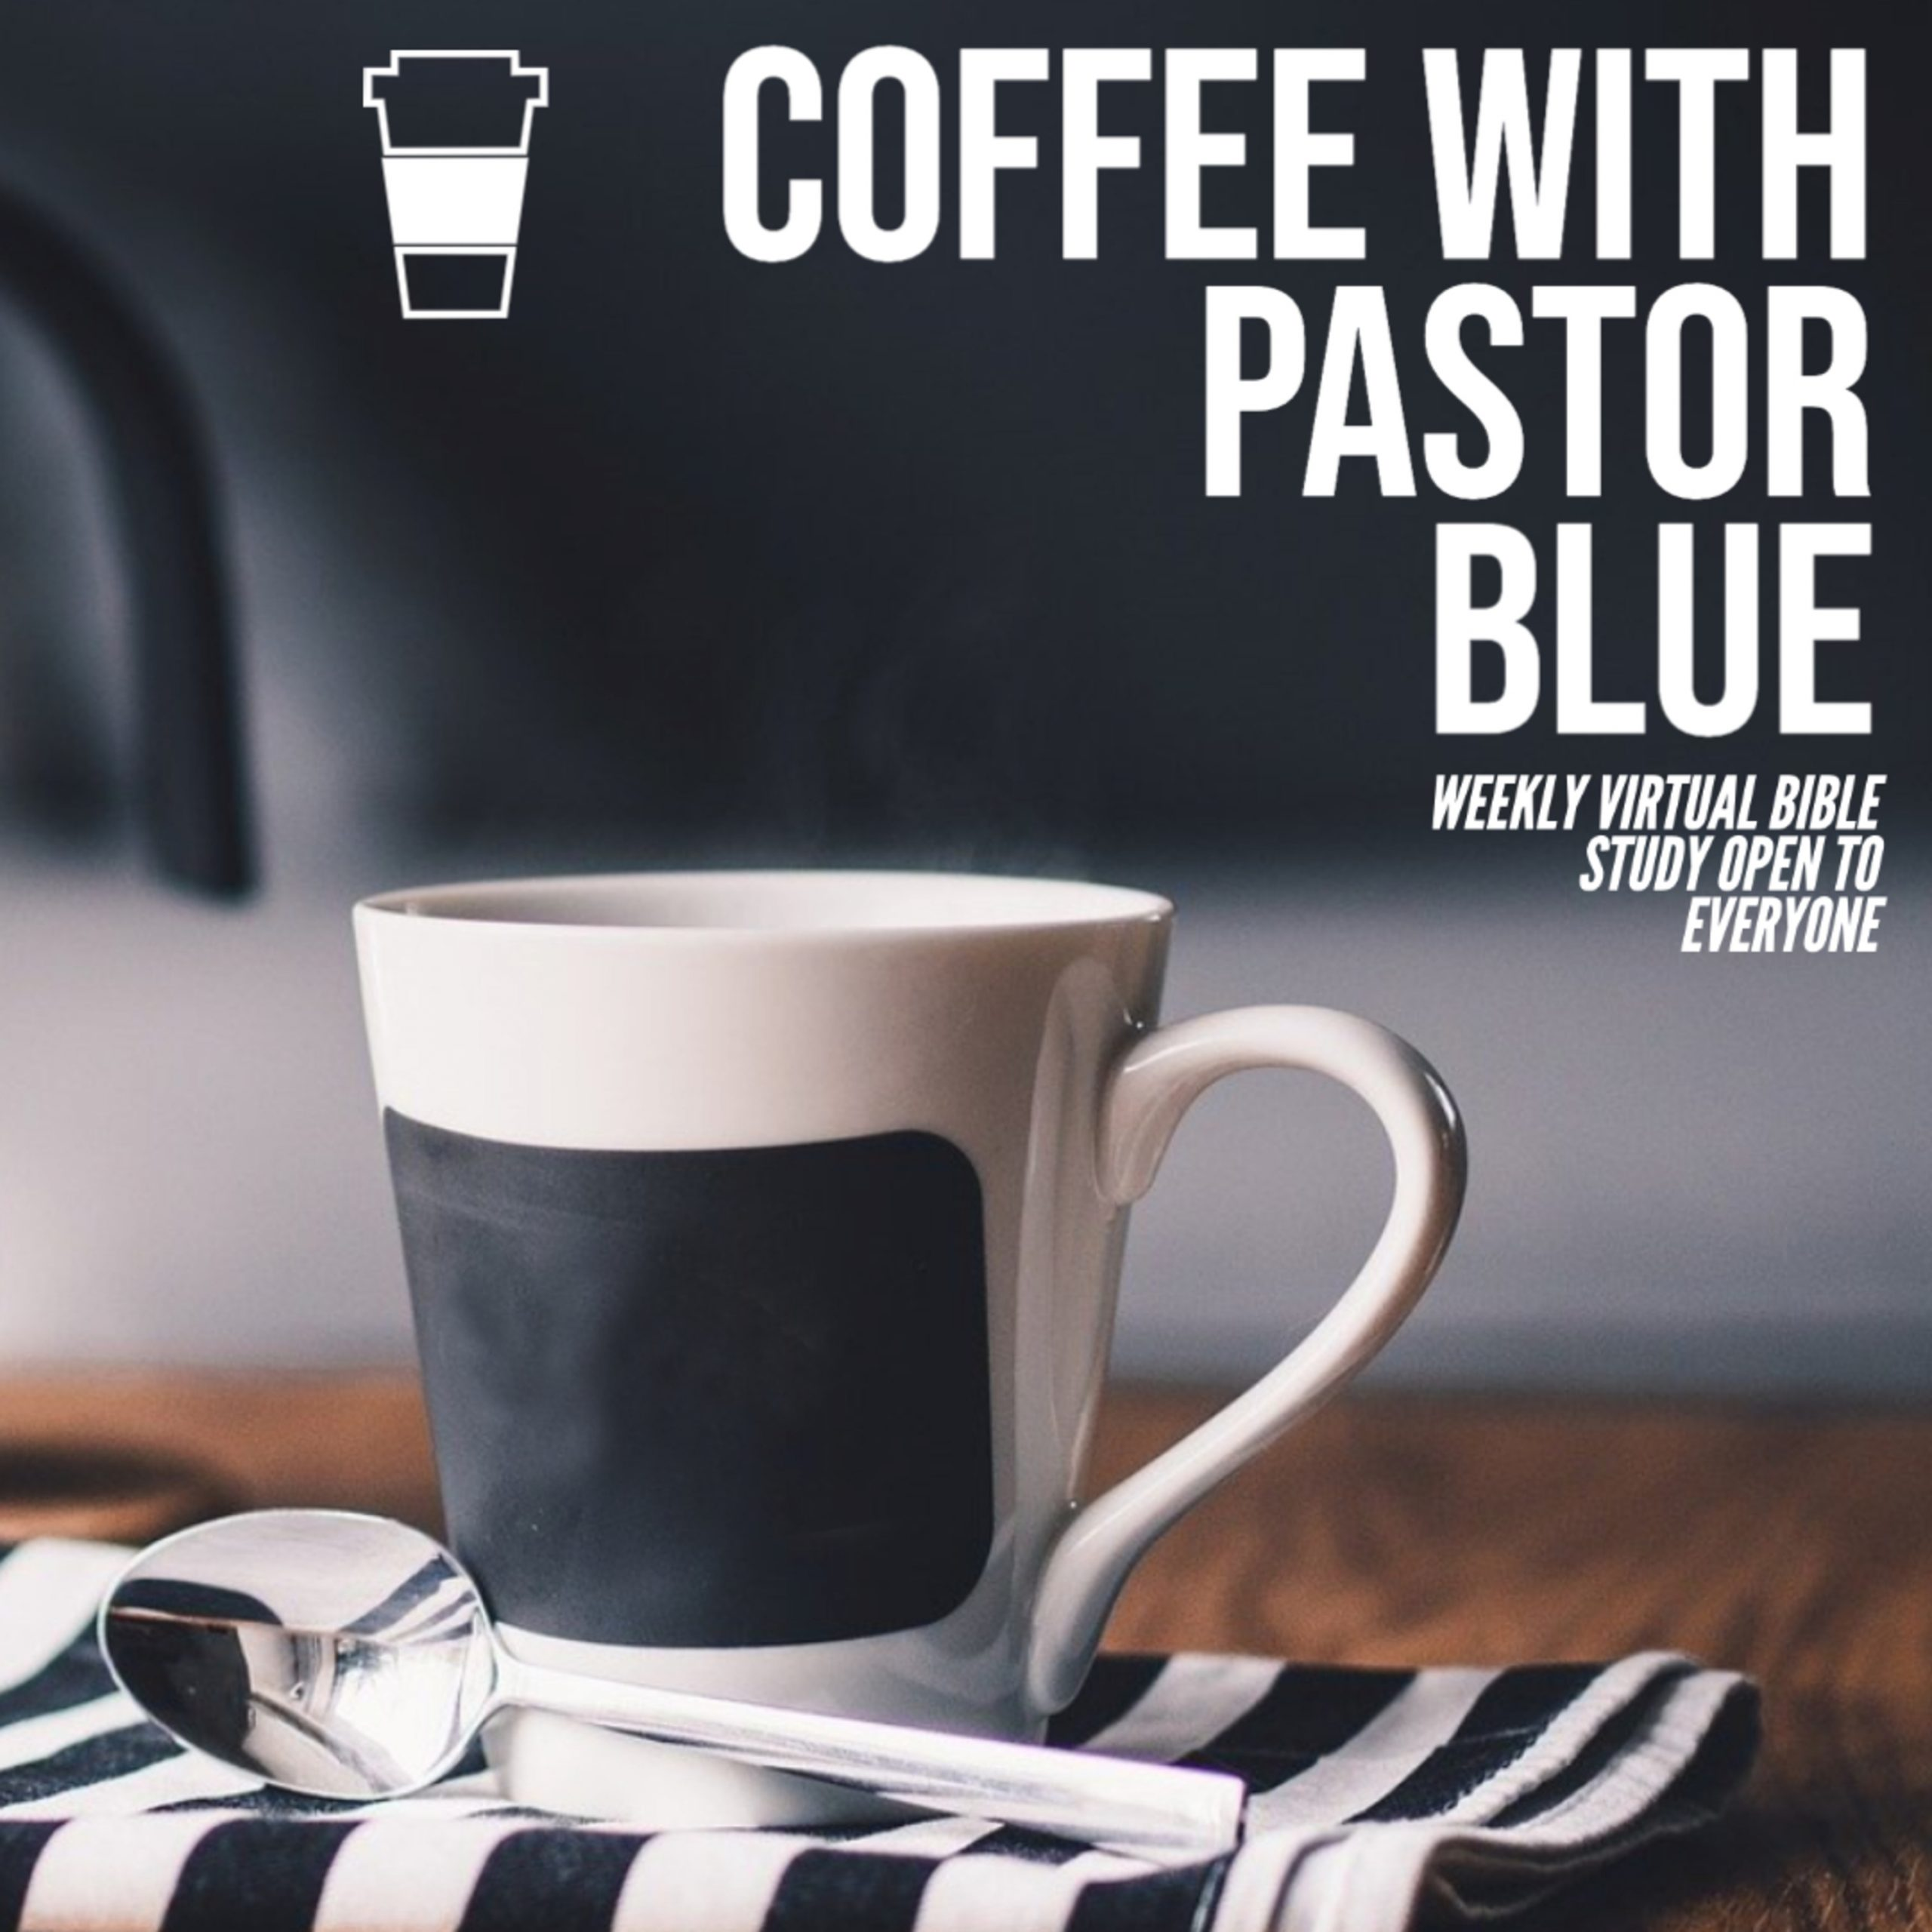 You are currently viewing Coffee with the Pastor Episode 4: The Great Commission